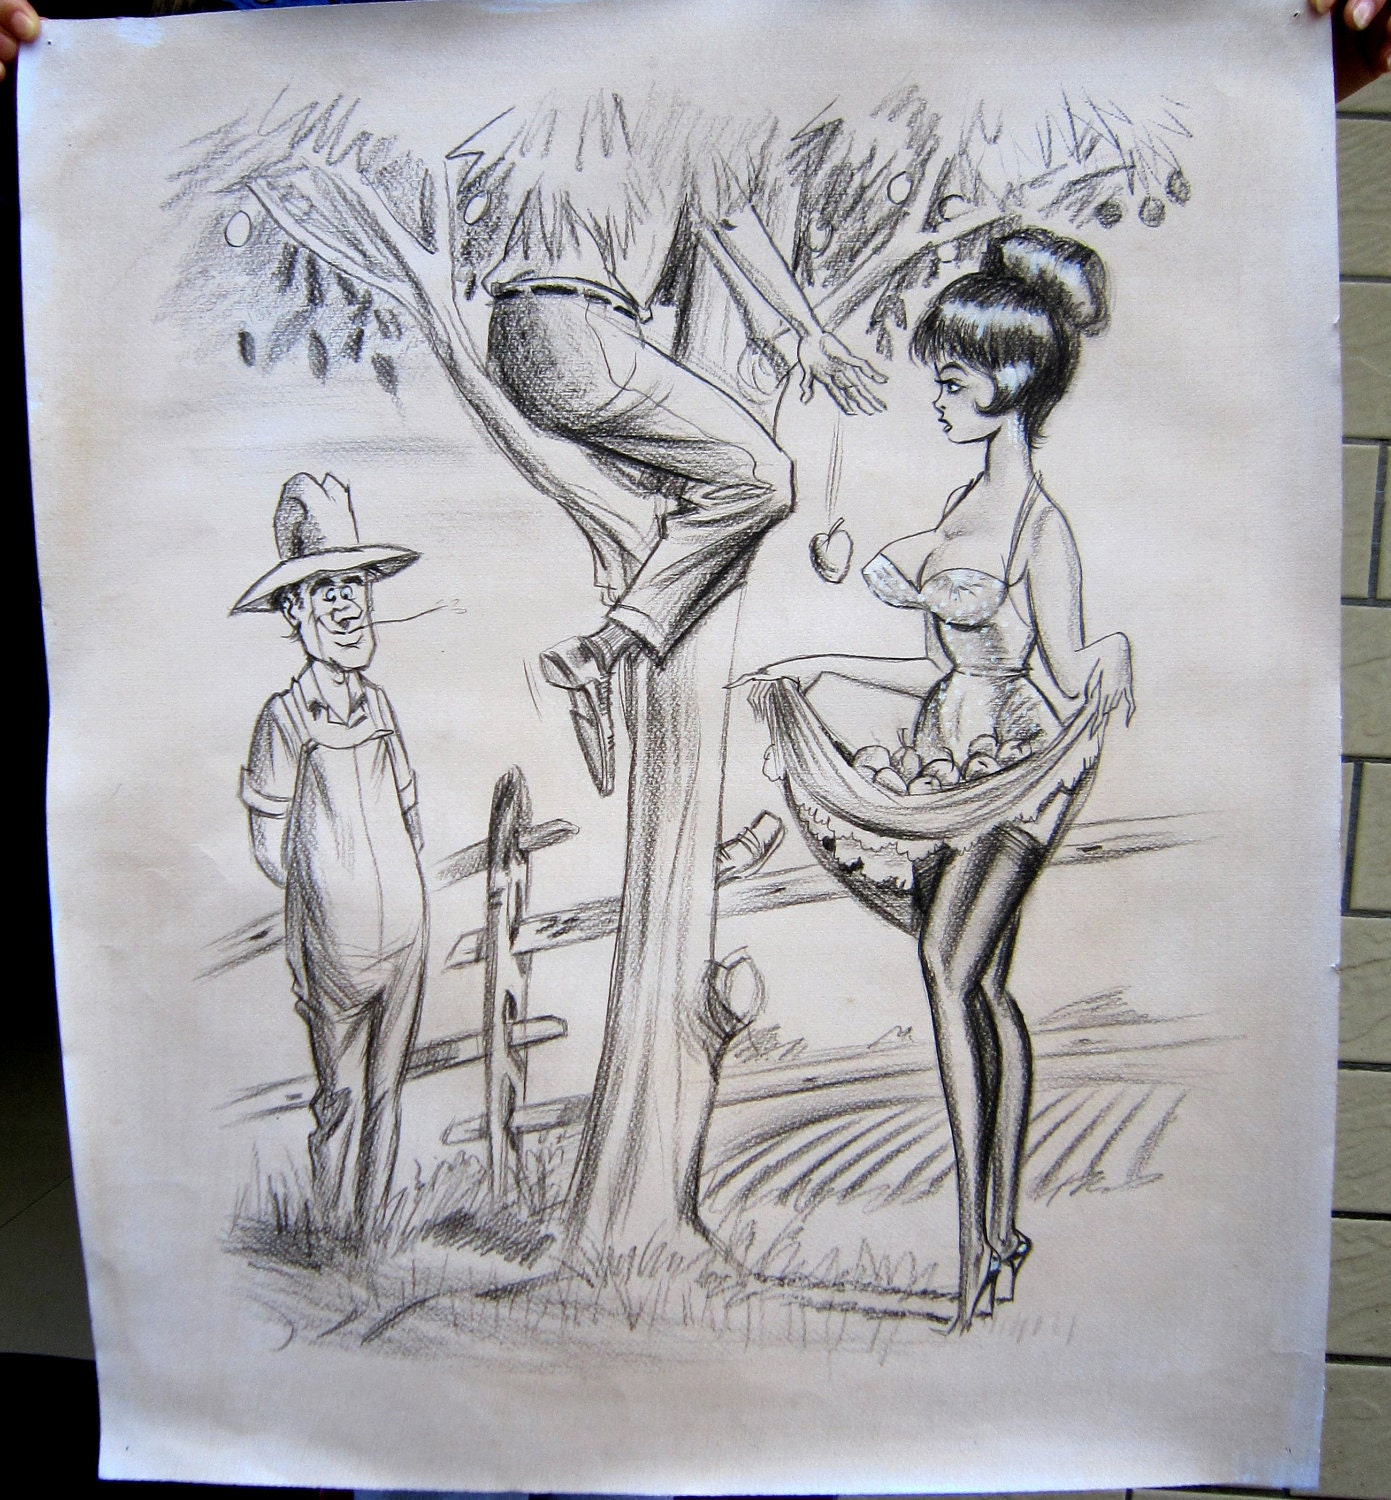 Apple Picking Time-Adult cartoon (in style of Bill Ward), hand drawn o.